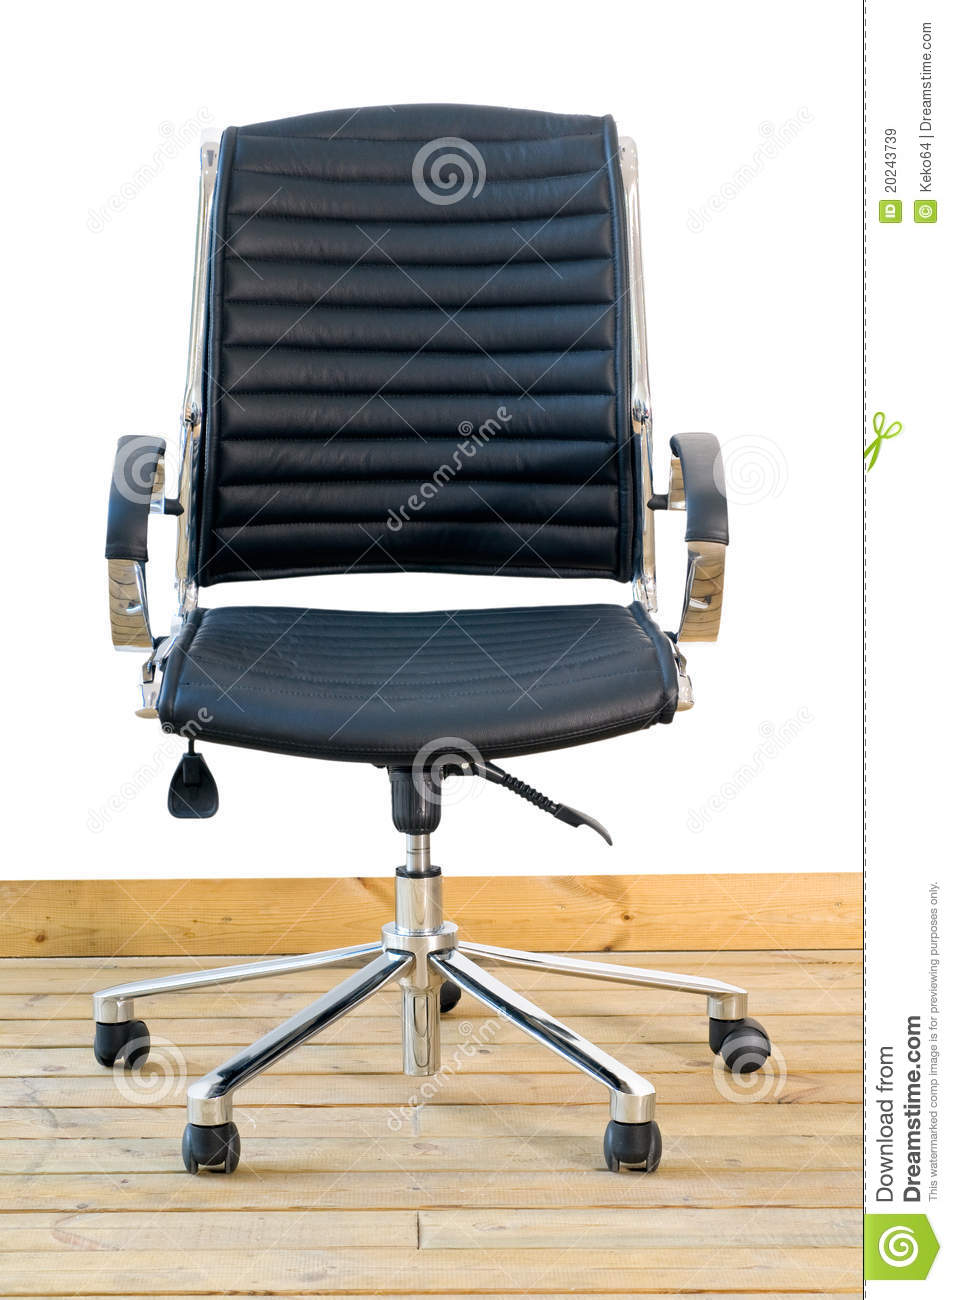 modern black leather office chair royalty free stock images image